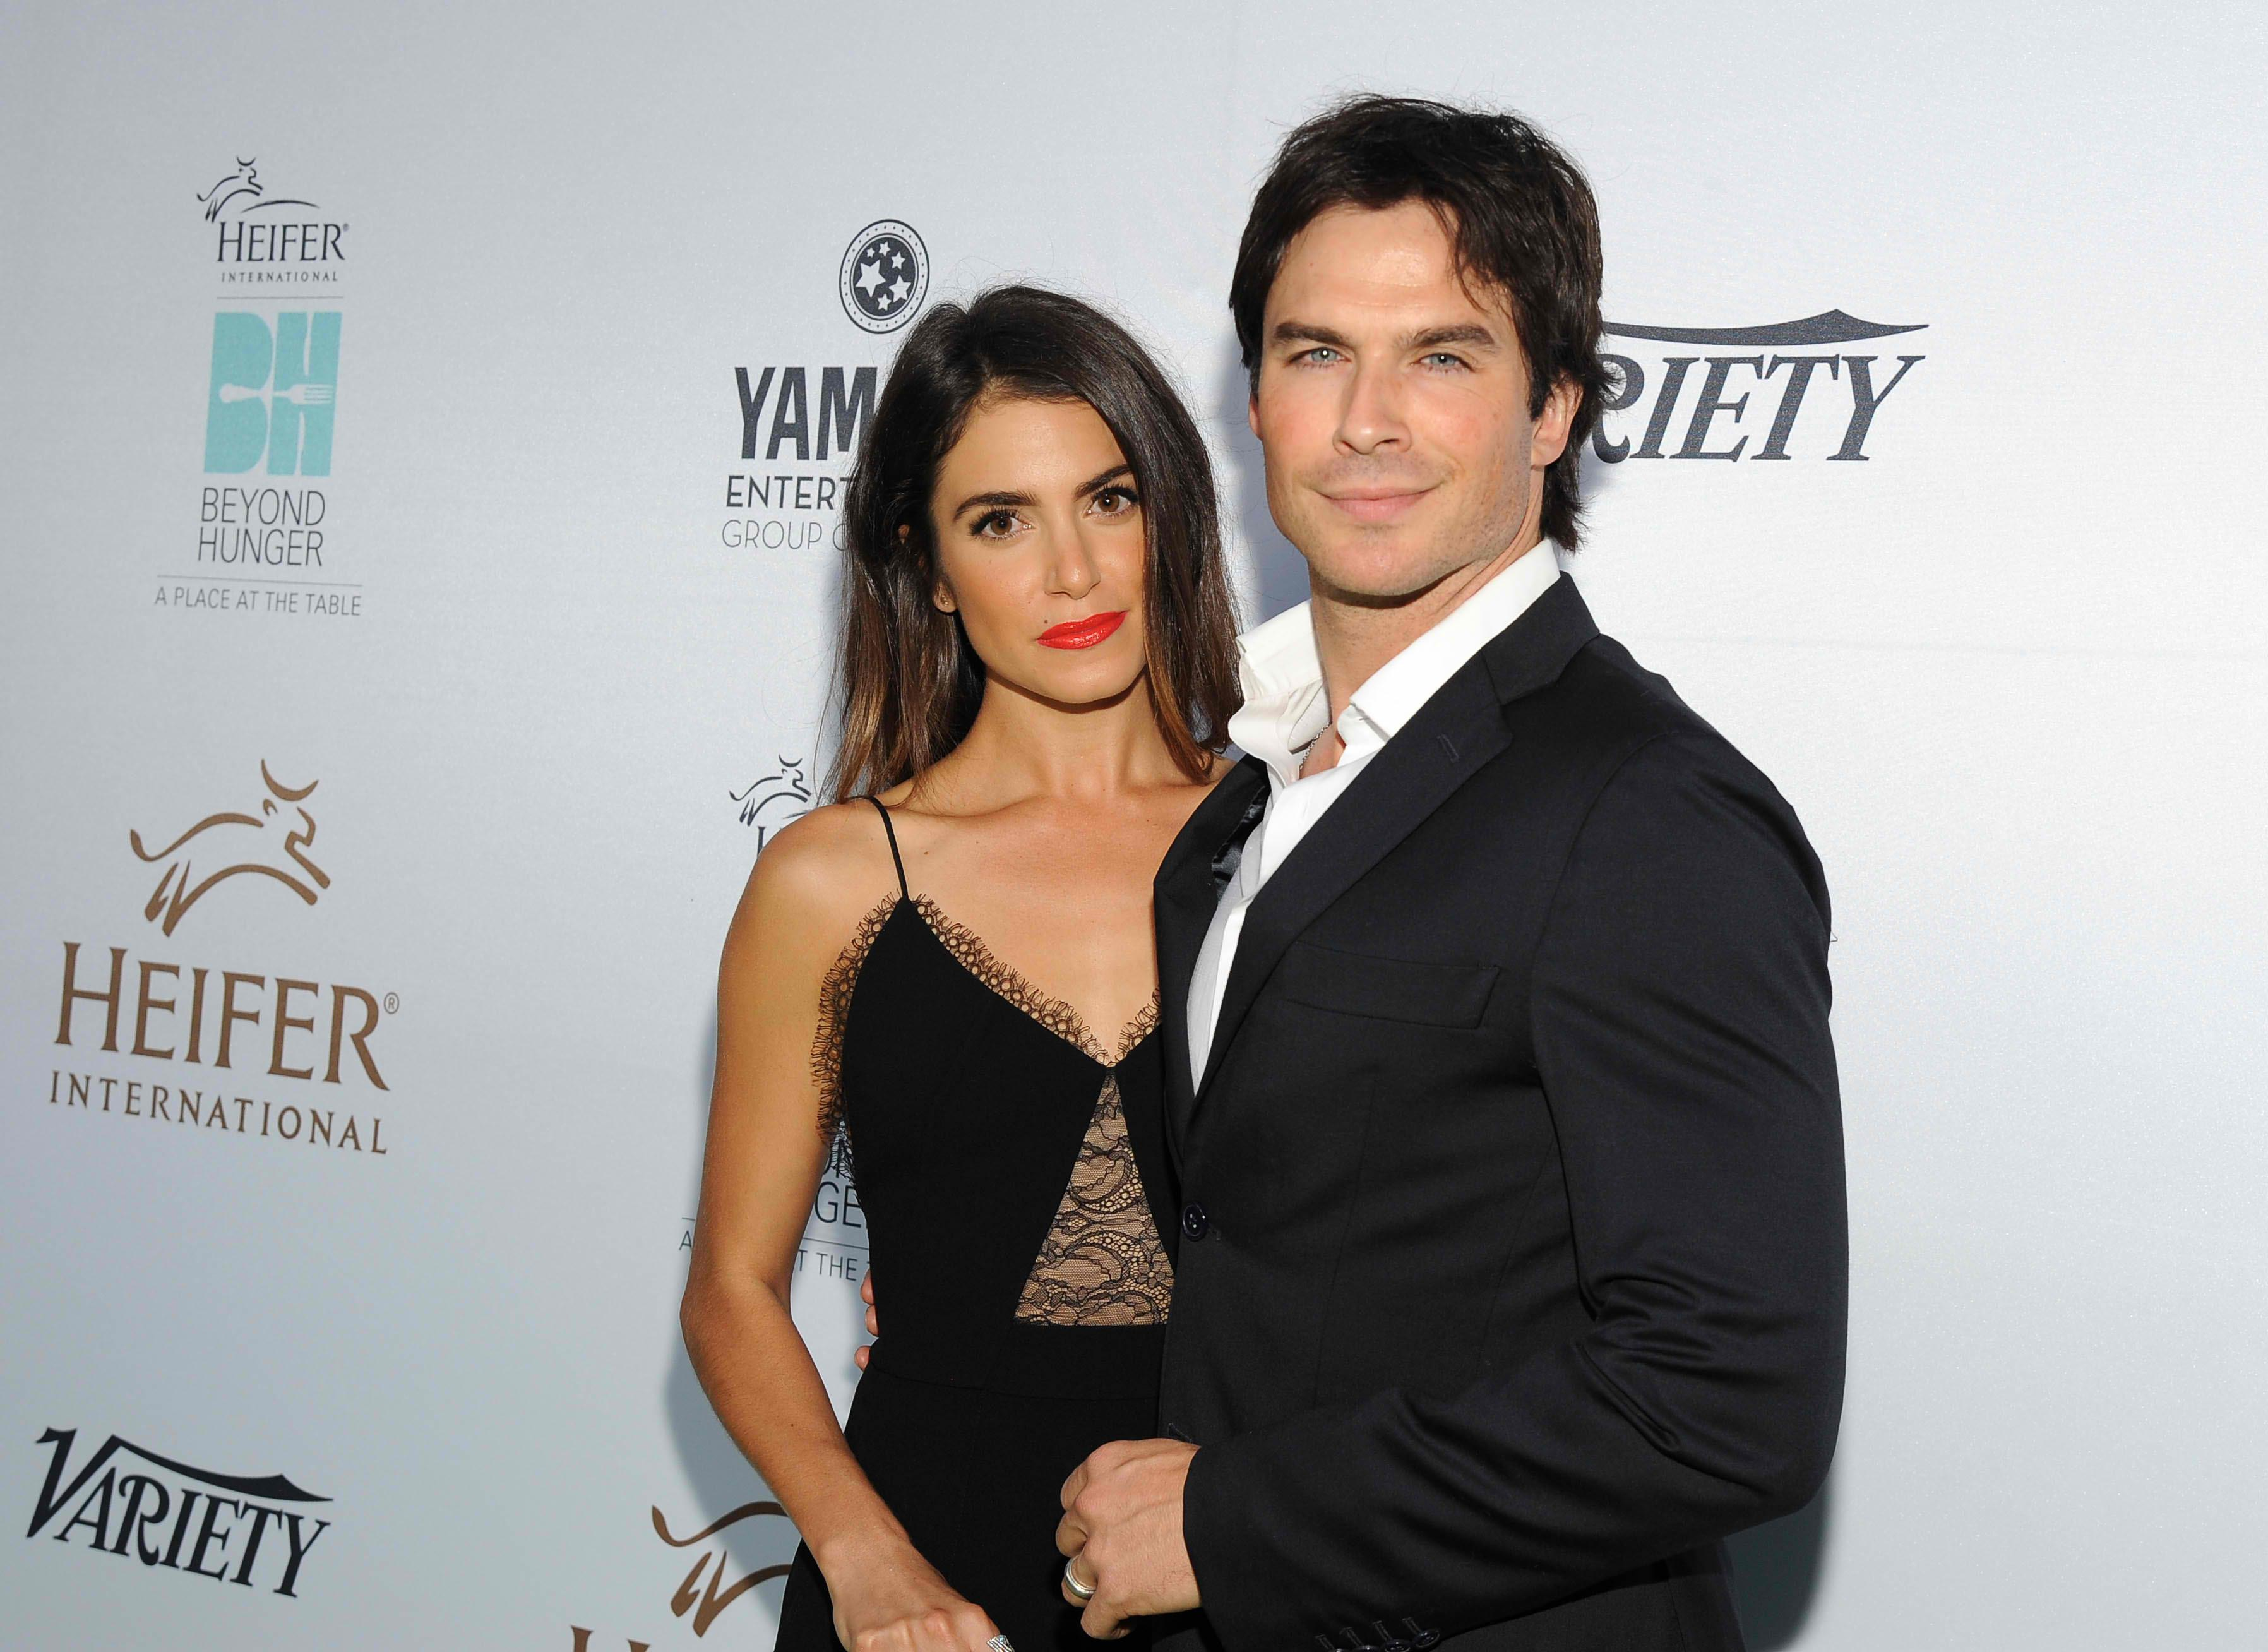 Nikki Reed slams reports claiming husband Ian Somerhalder 'forced' her for pregnancy